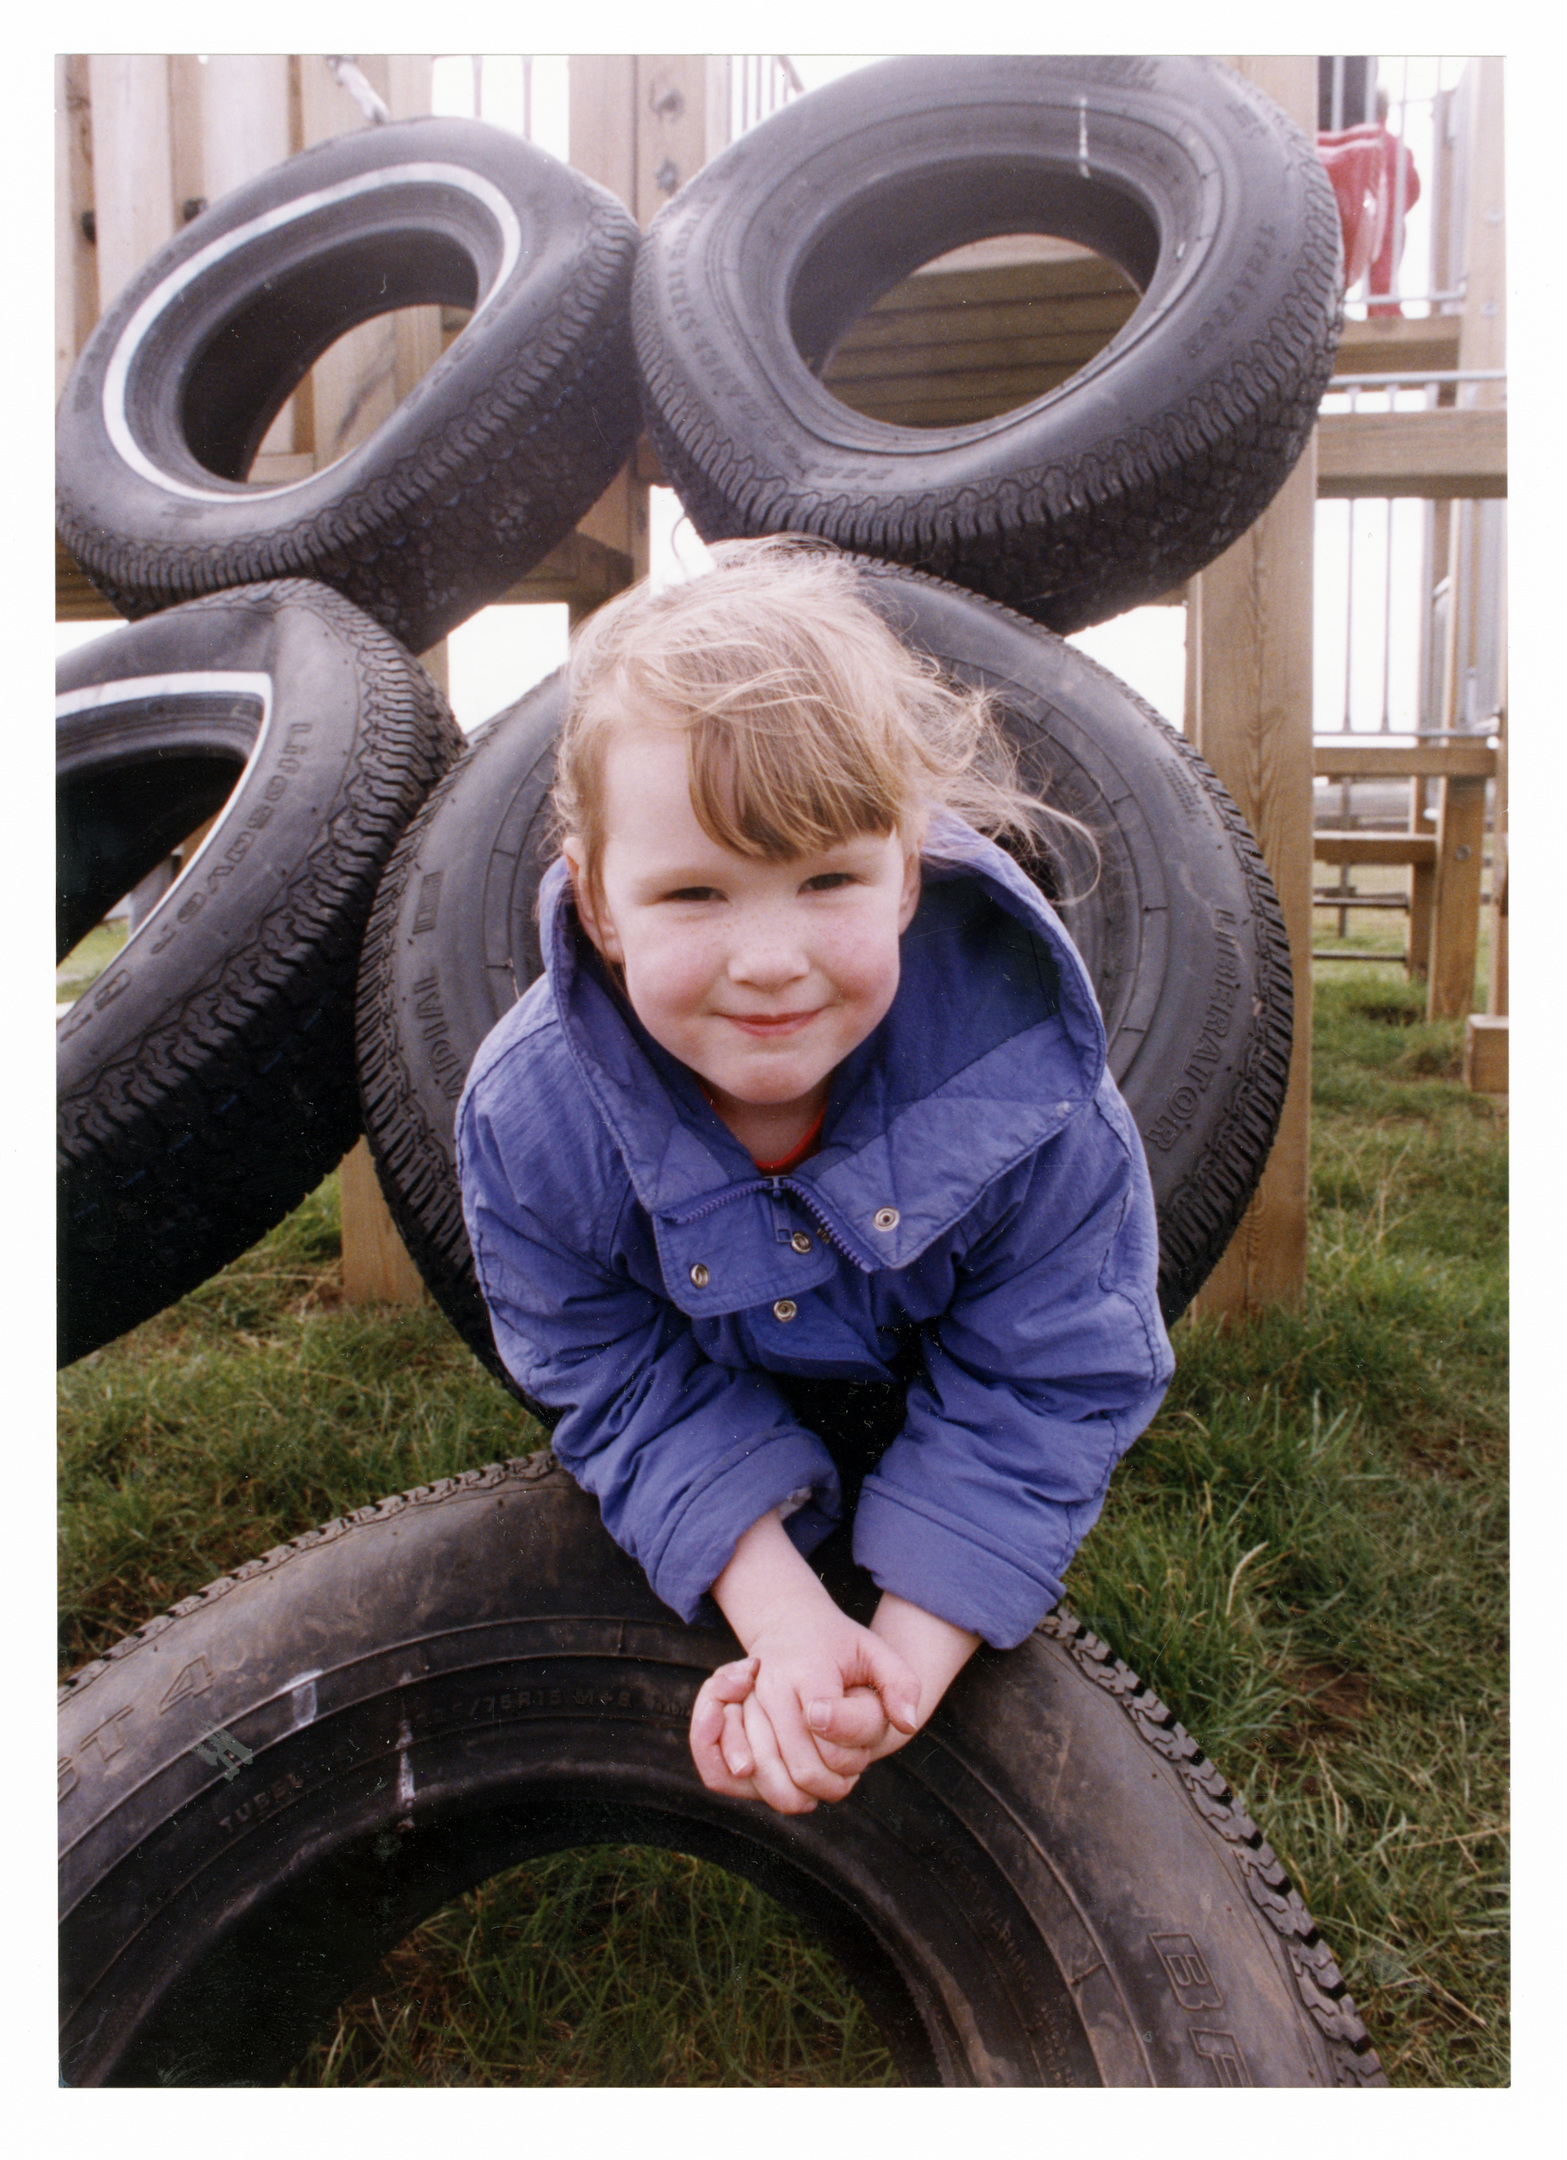 Stephanie Christie clambering into the tyres in the farm's adventure playground.